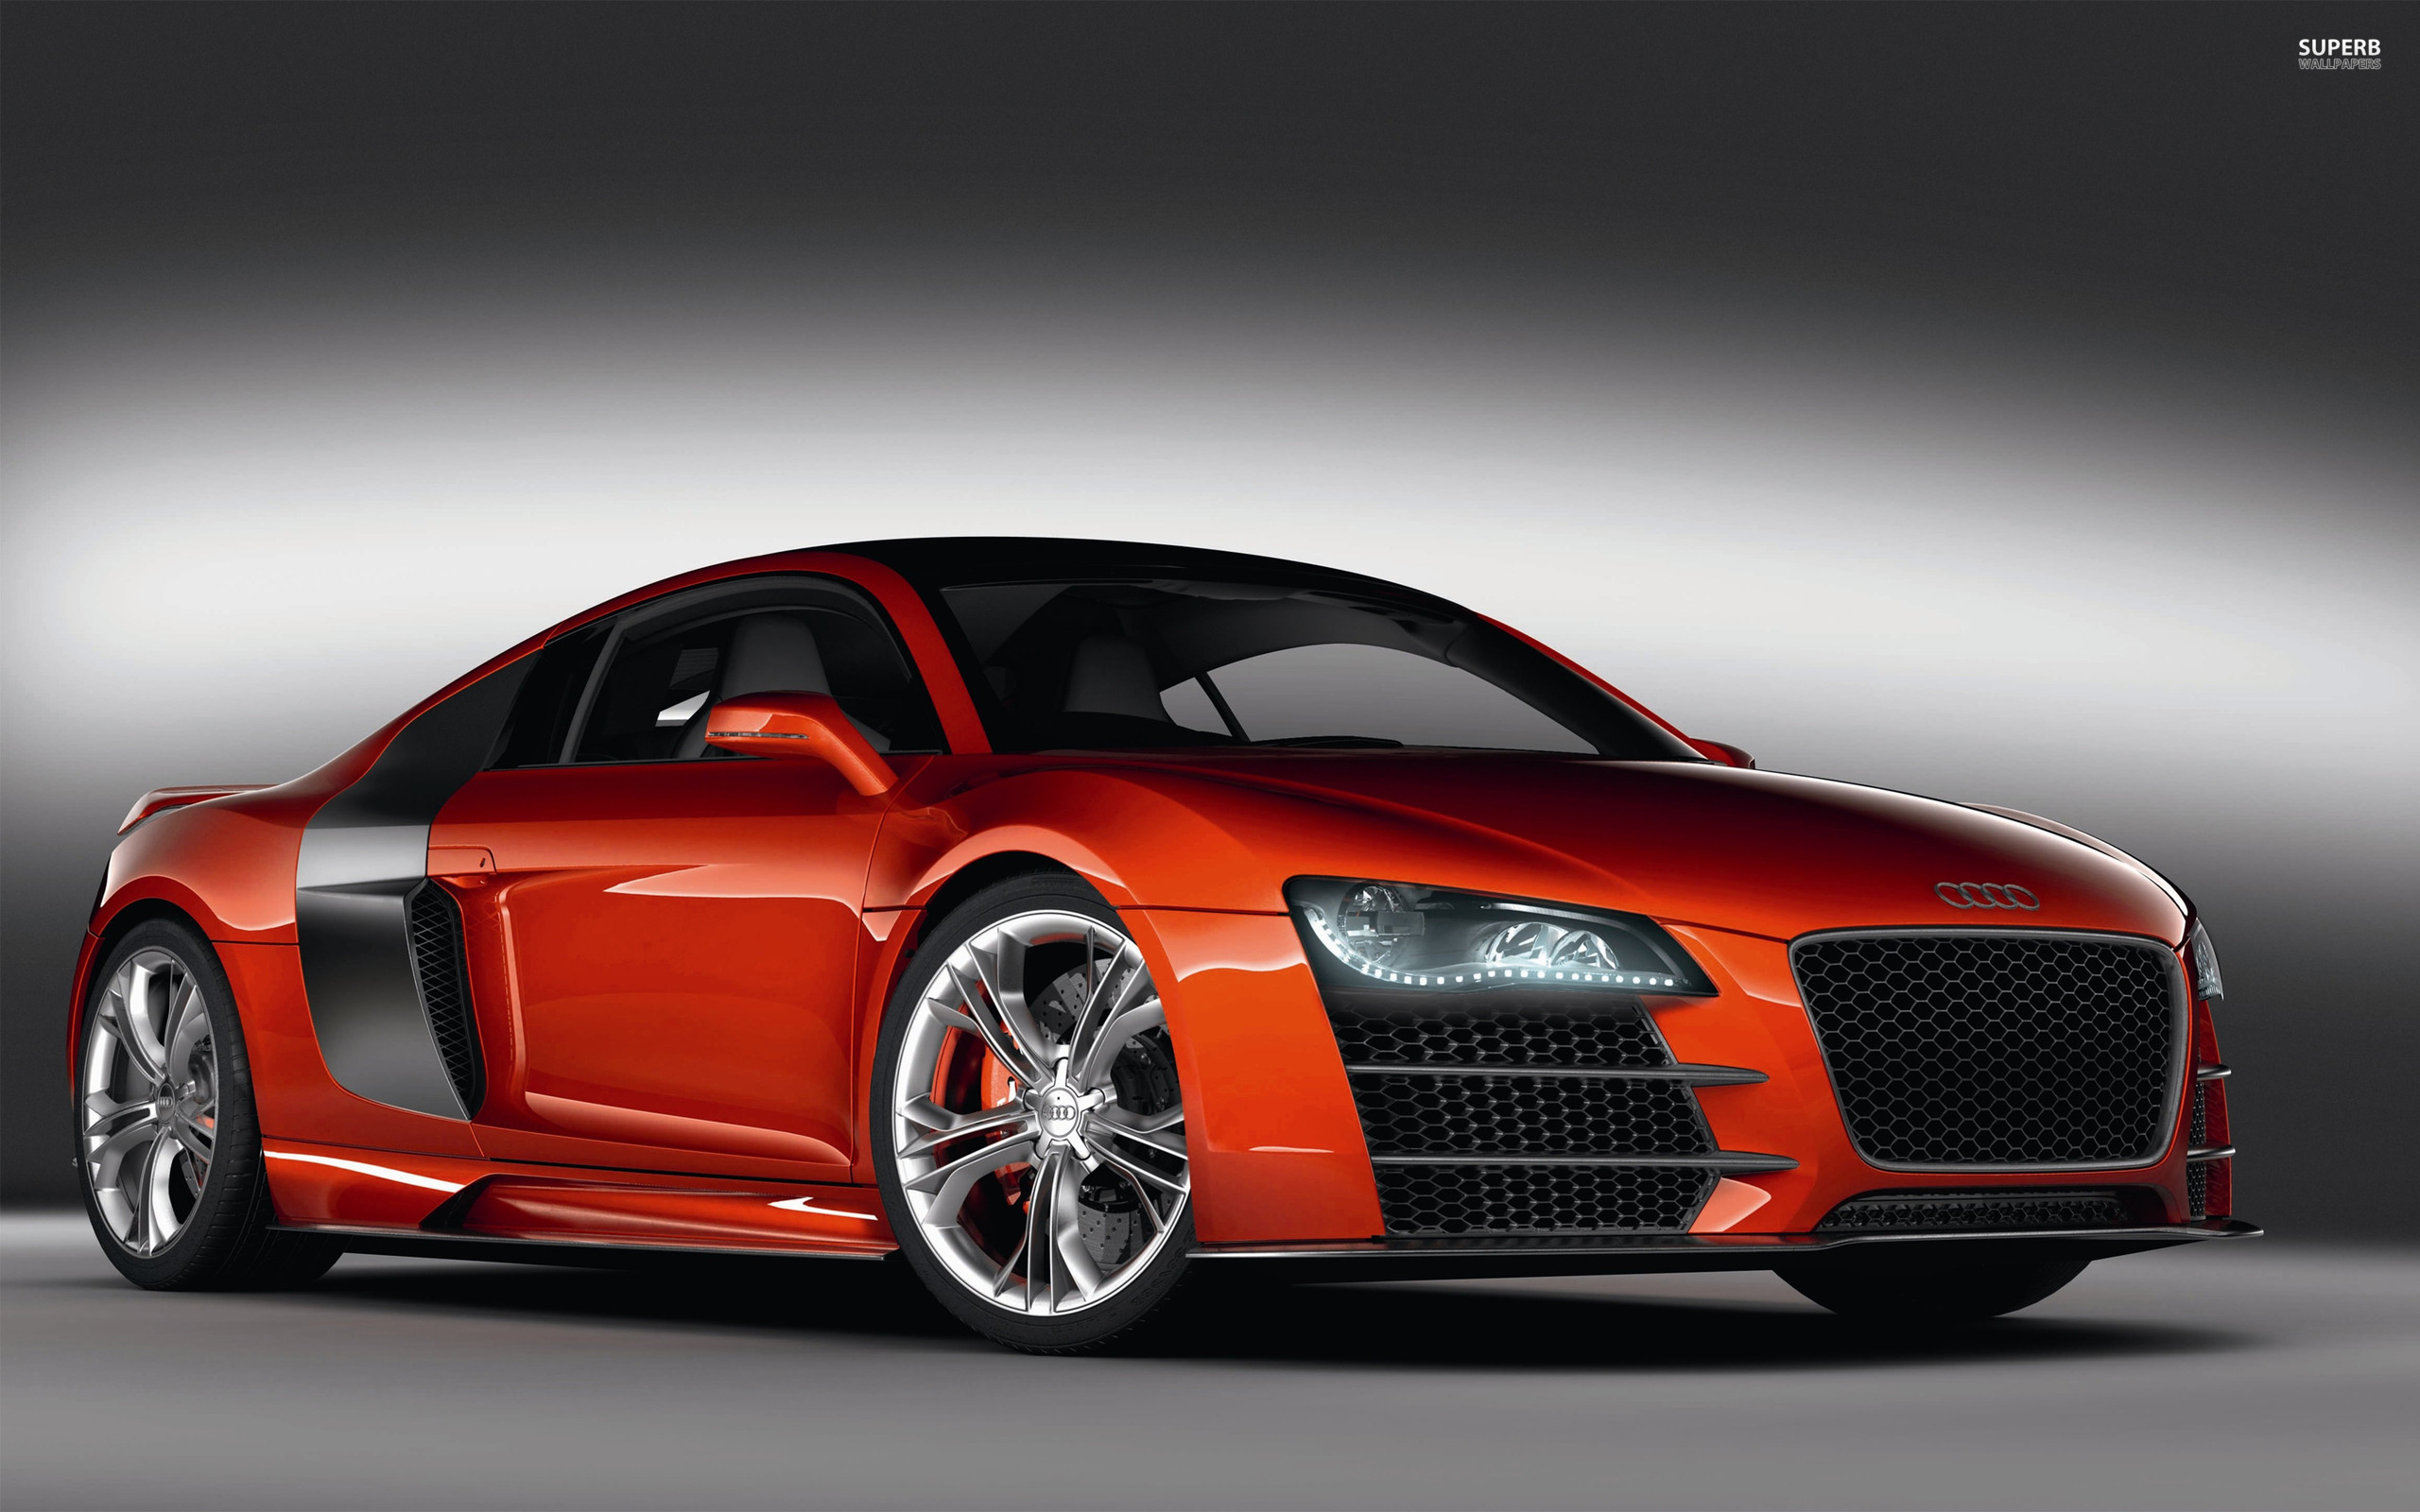 Audi R8 Wallpapers, 100% Quality HD Pictures